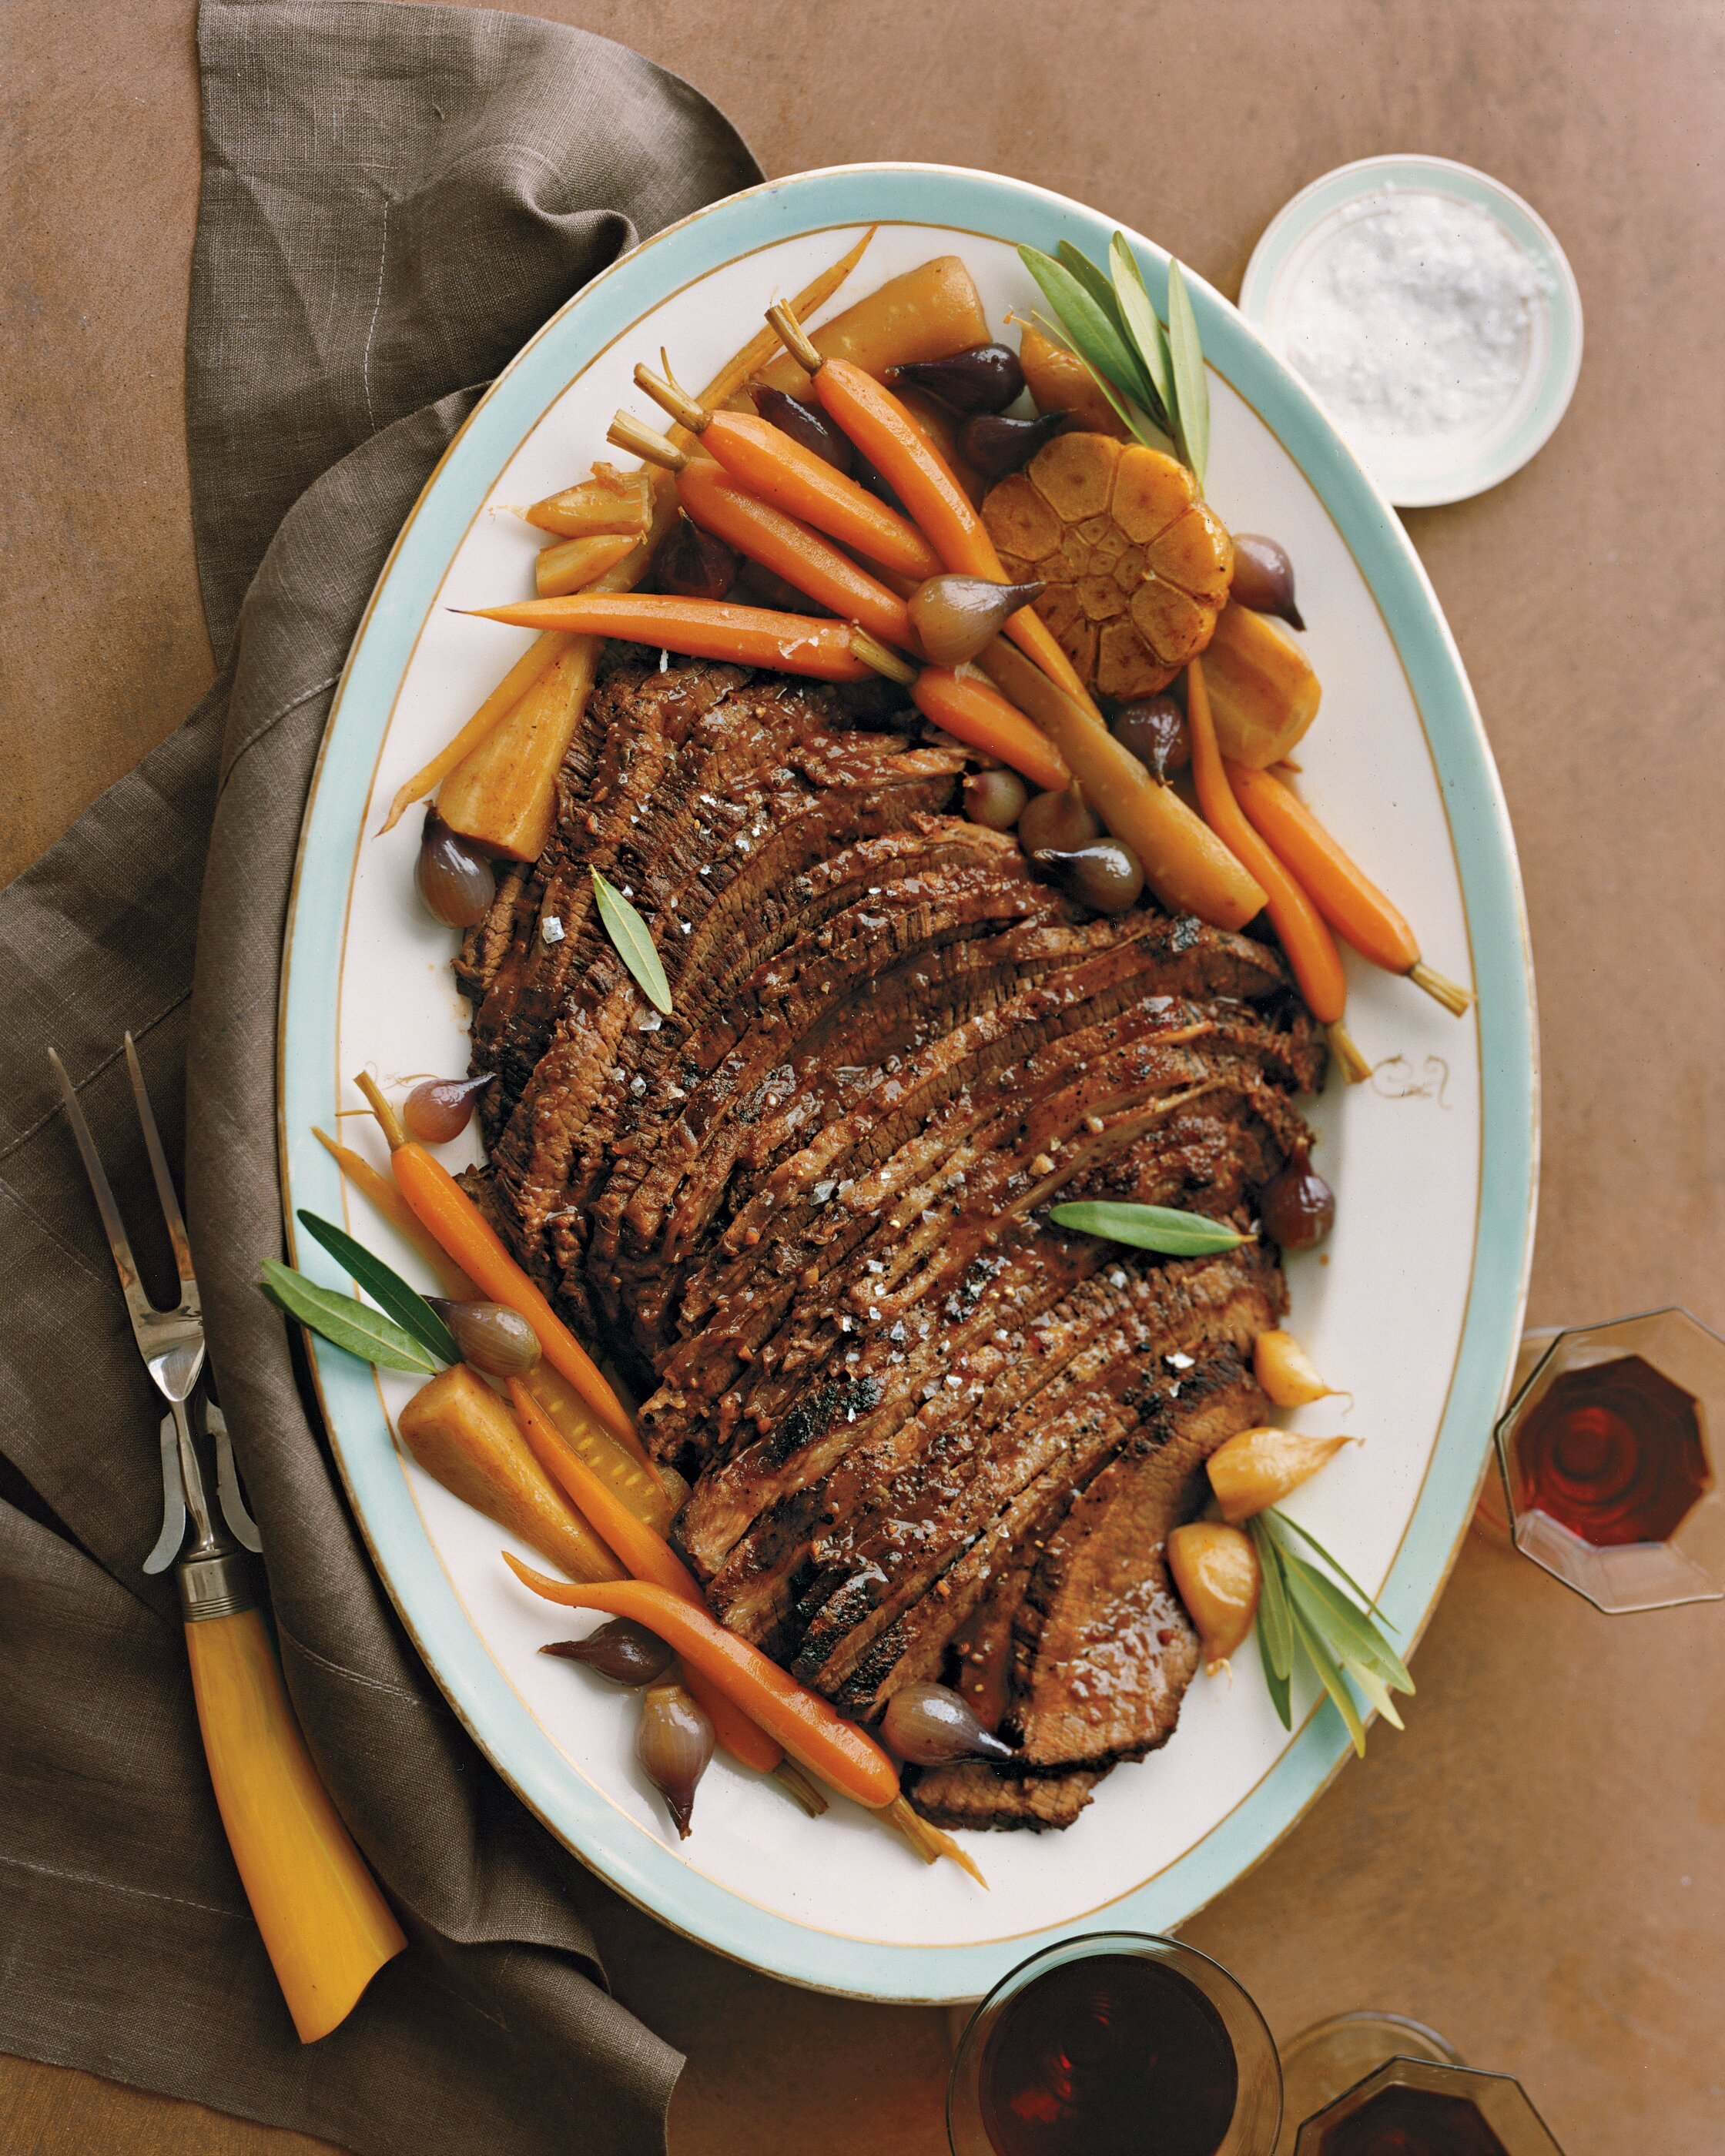 BRAISED BRISKET WITH CARROTS GARLIC AND PARSNIPS